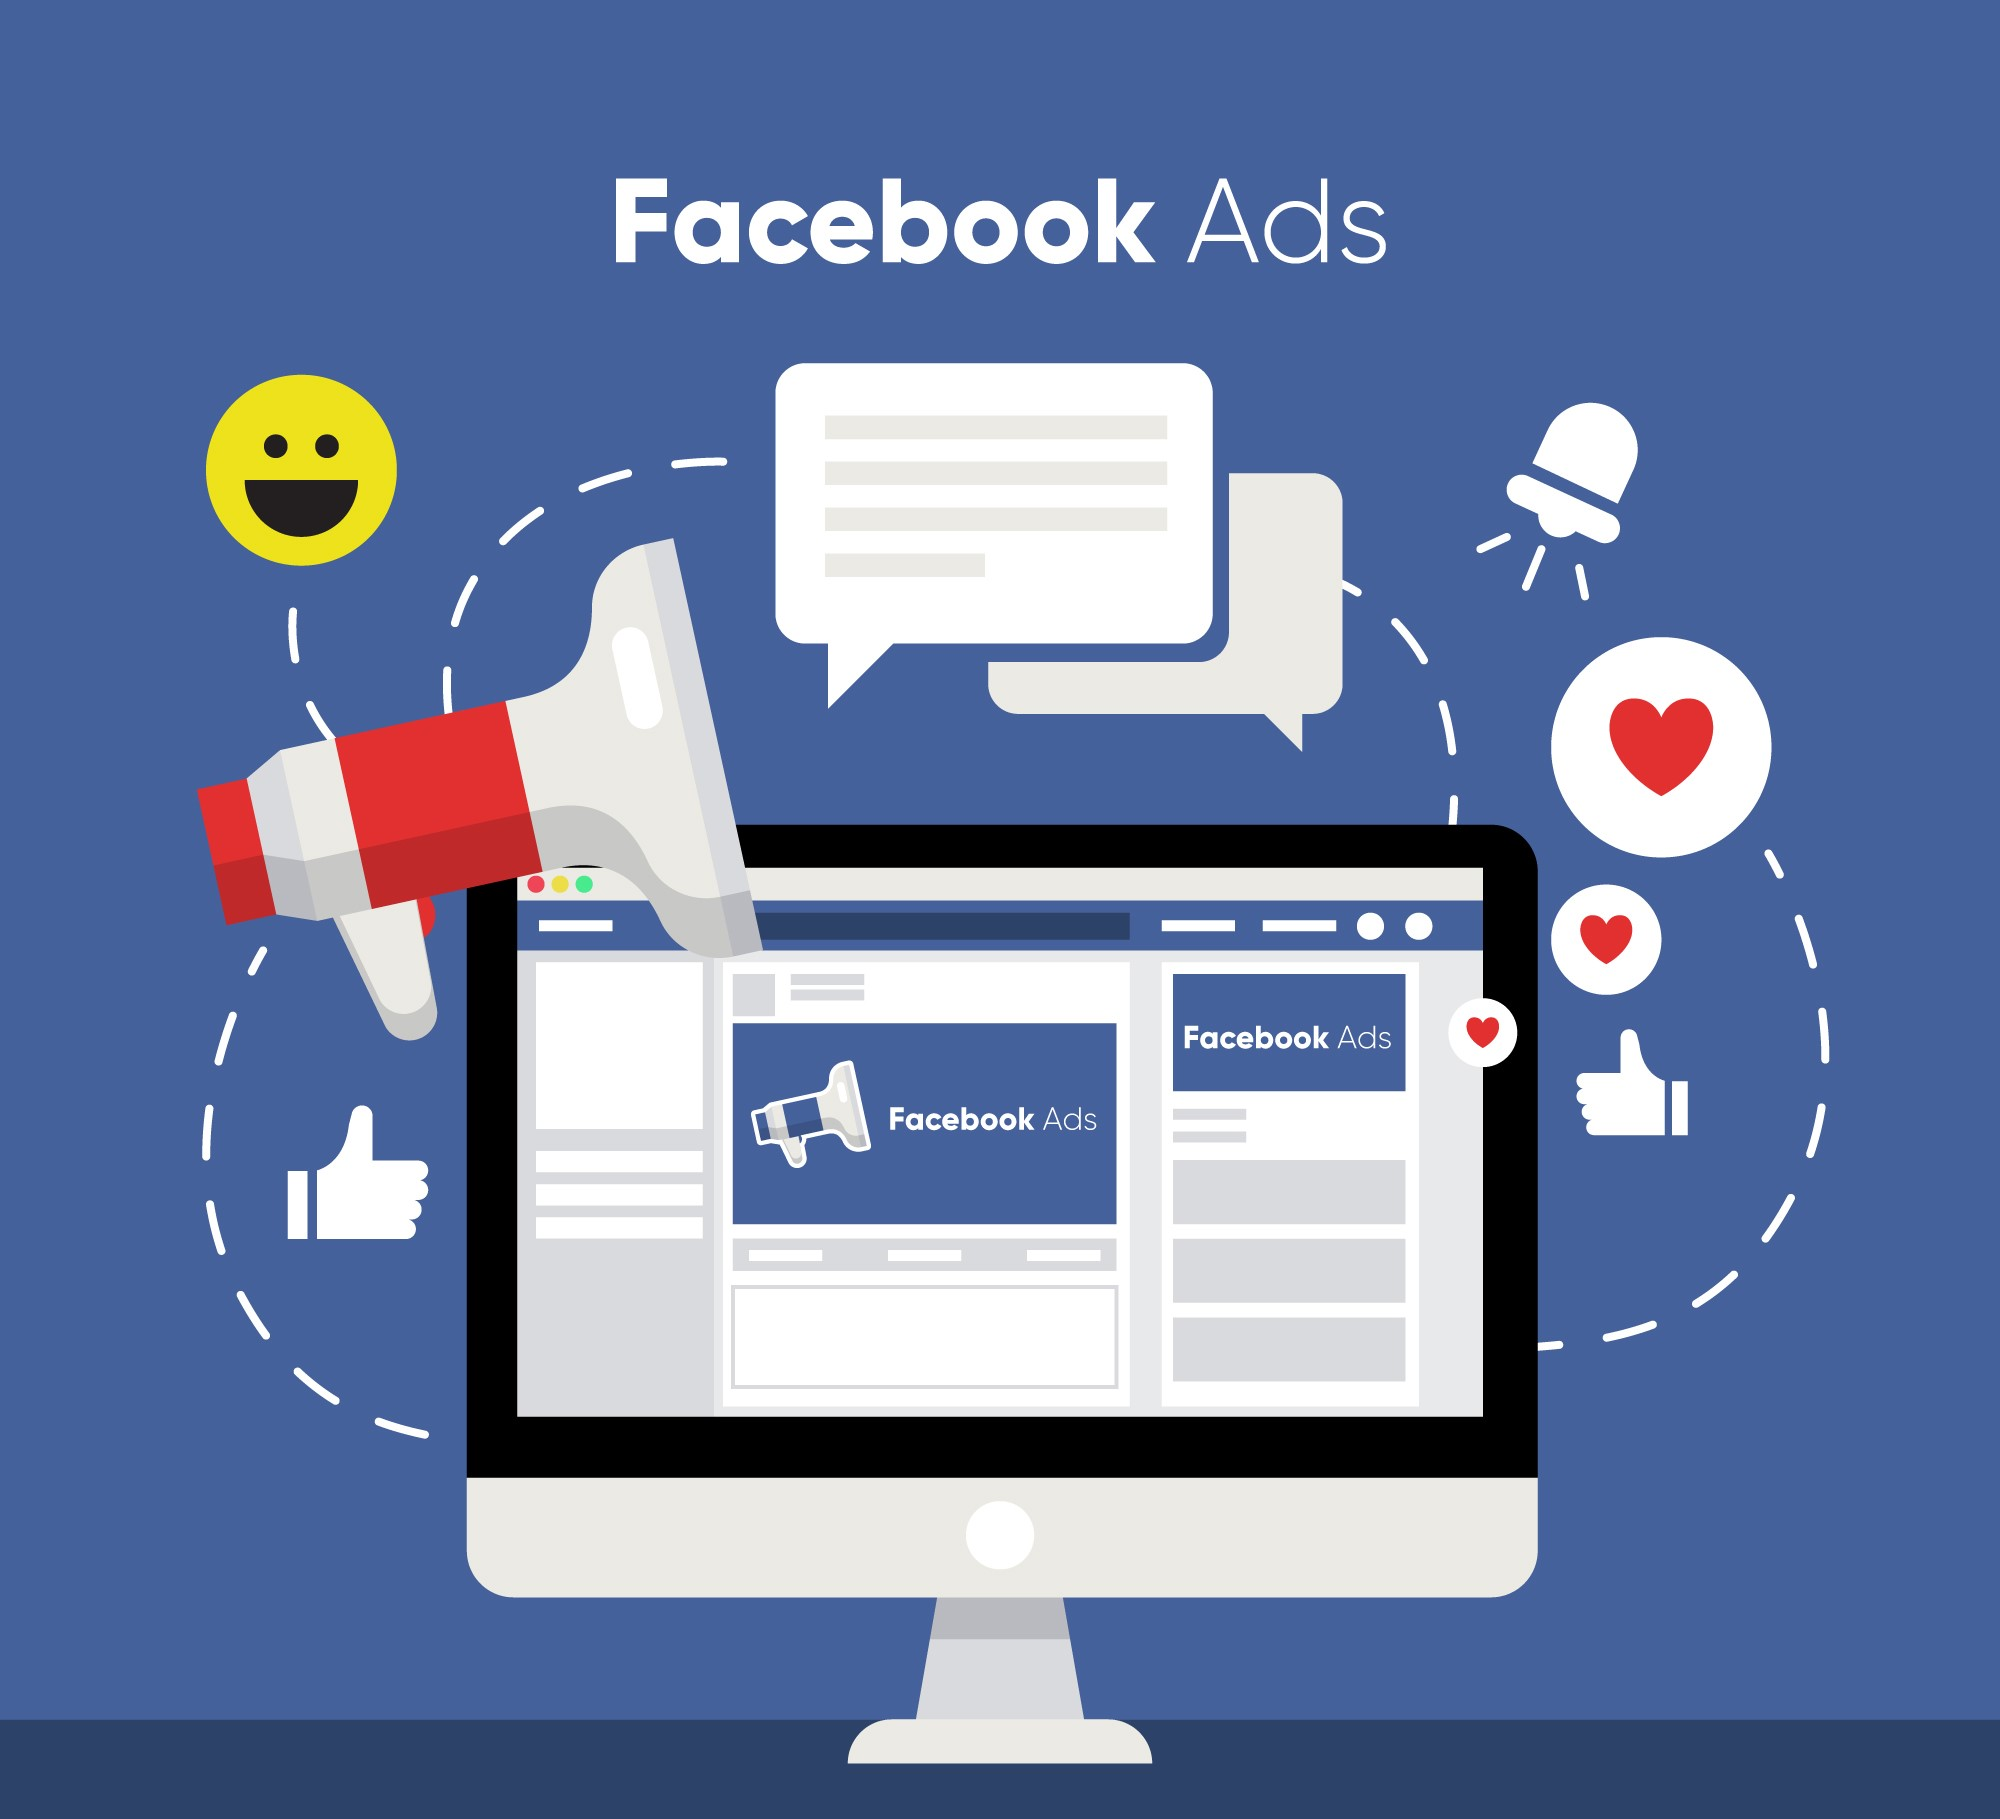 Facebook Business Page Adverts